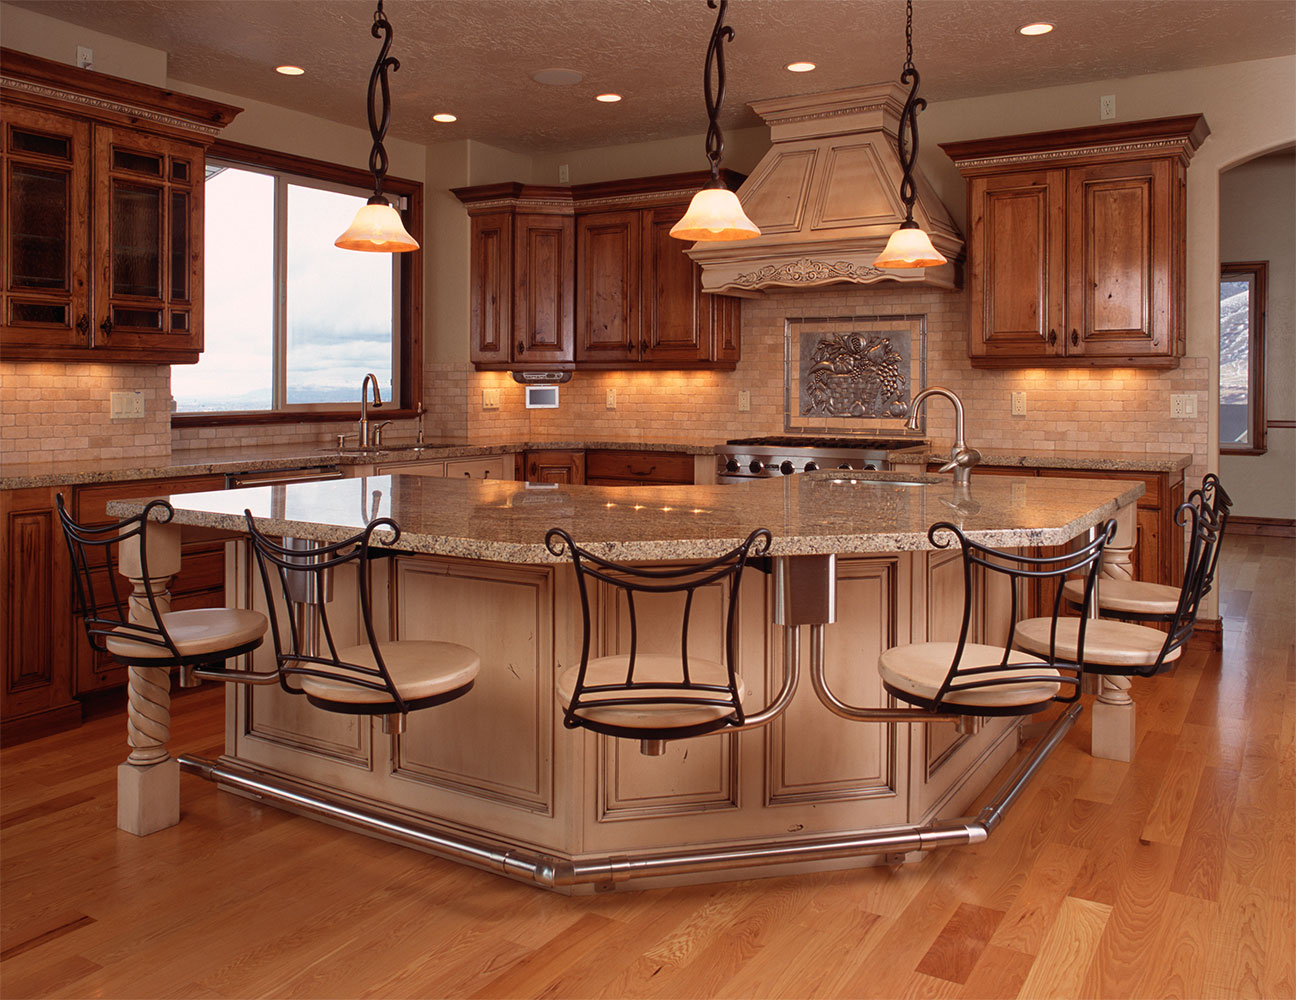 kitchen island with bar seating serrated knife photos innovations